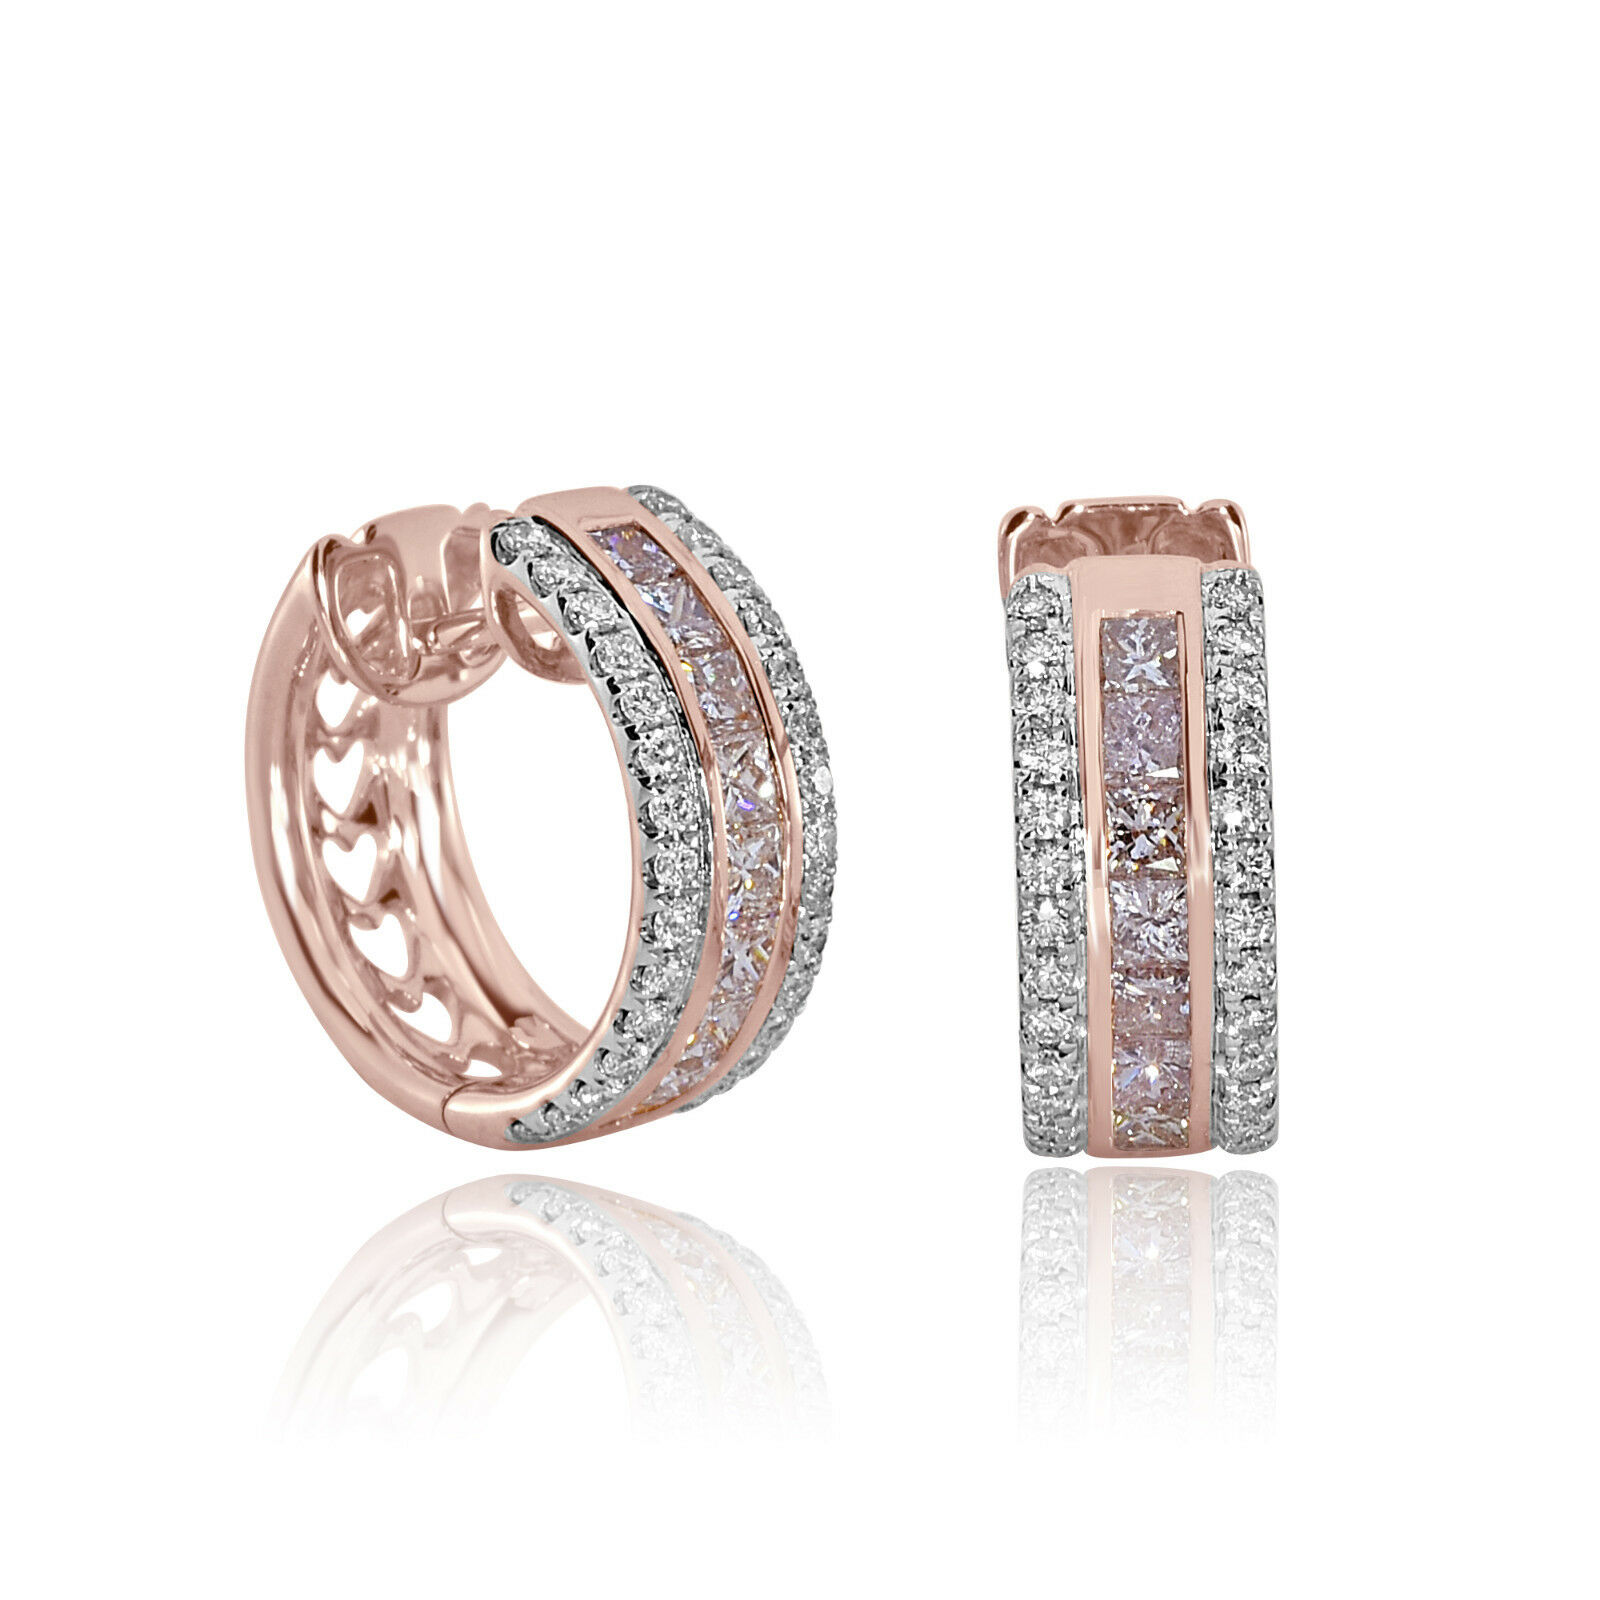 Real Fine 2.20ct Fancy Pink Diamonds Earrings 18K All Natural 9 Grams pink gold